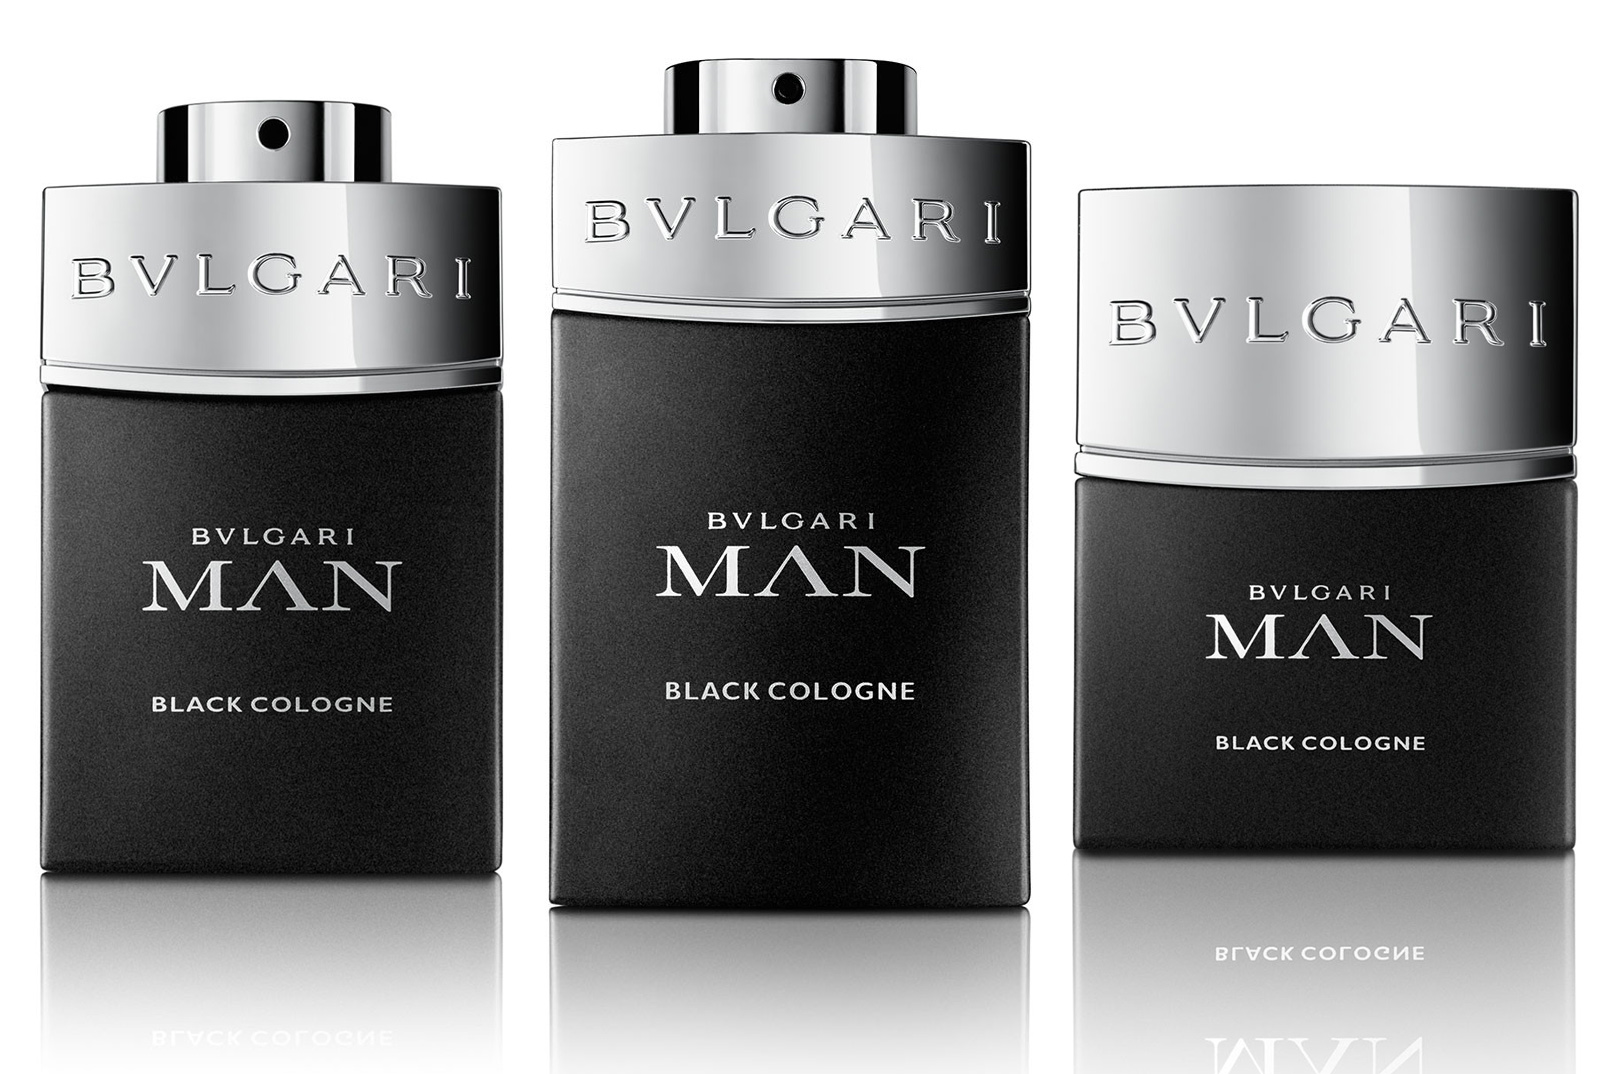 e065083414 BVLGARI MAN BLACK COLOGNE is available in the classic black flacon, just  like the previous editions of the collection, in the amount of 30ml (54  eur), ...